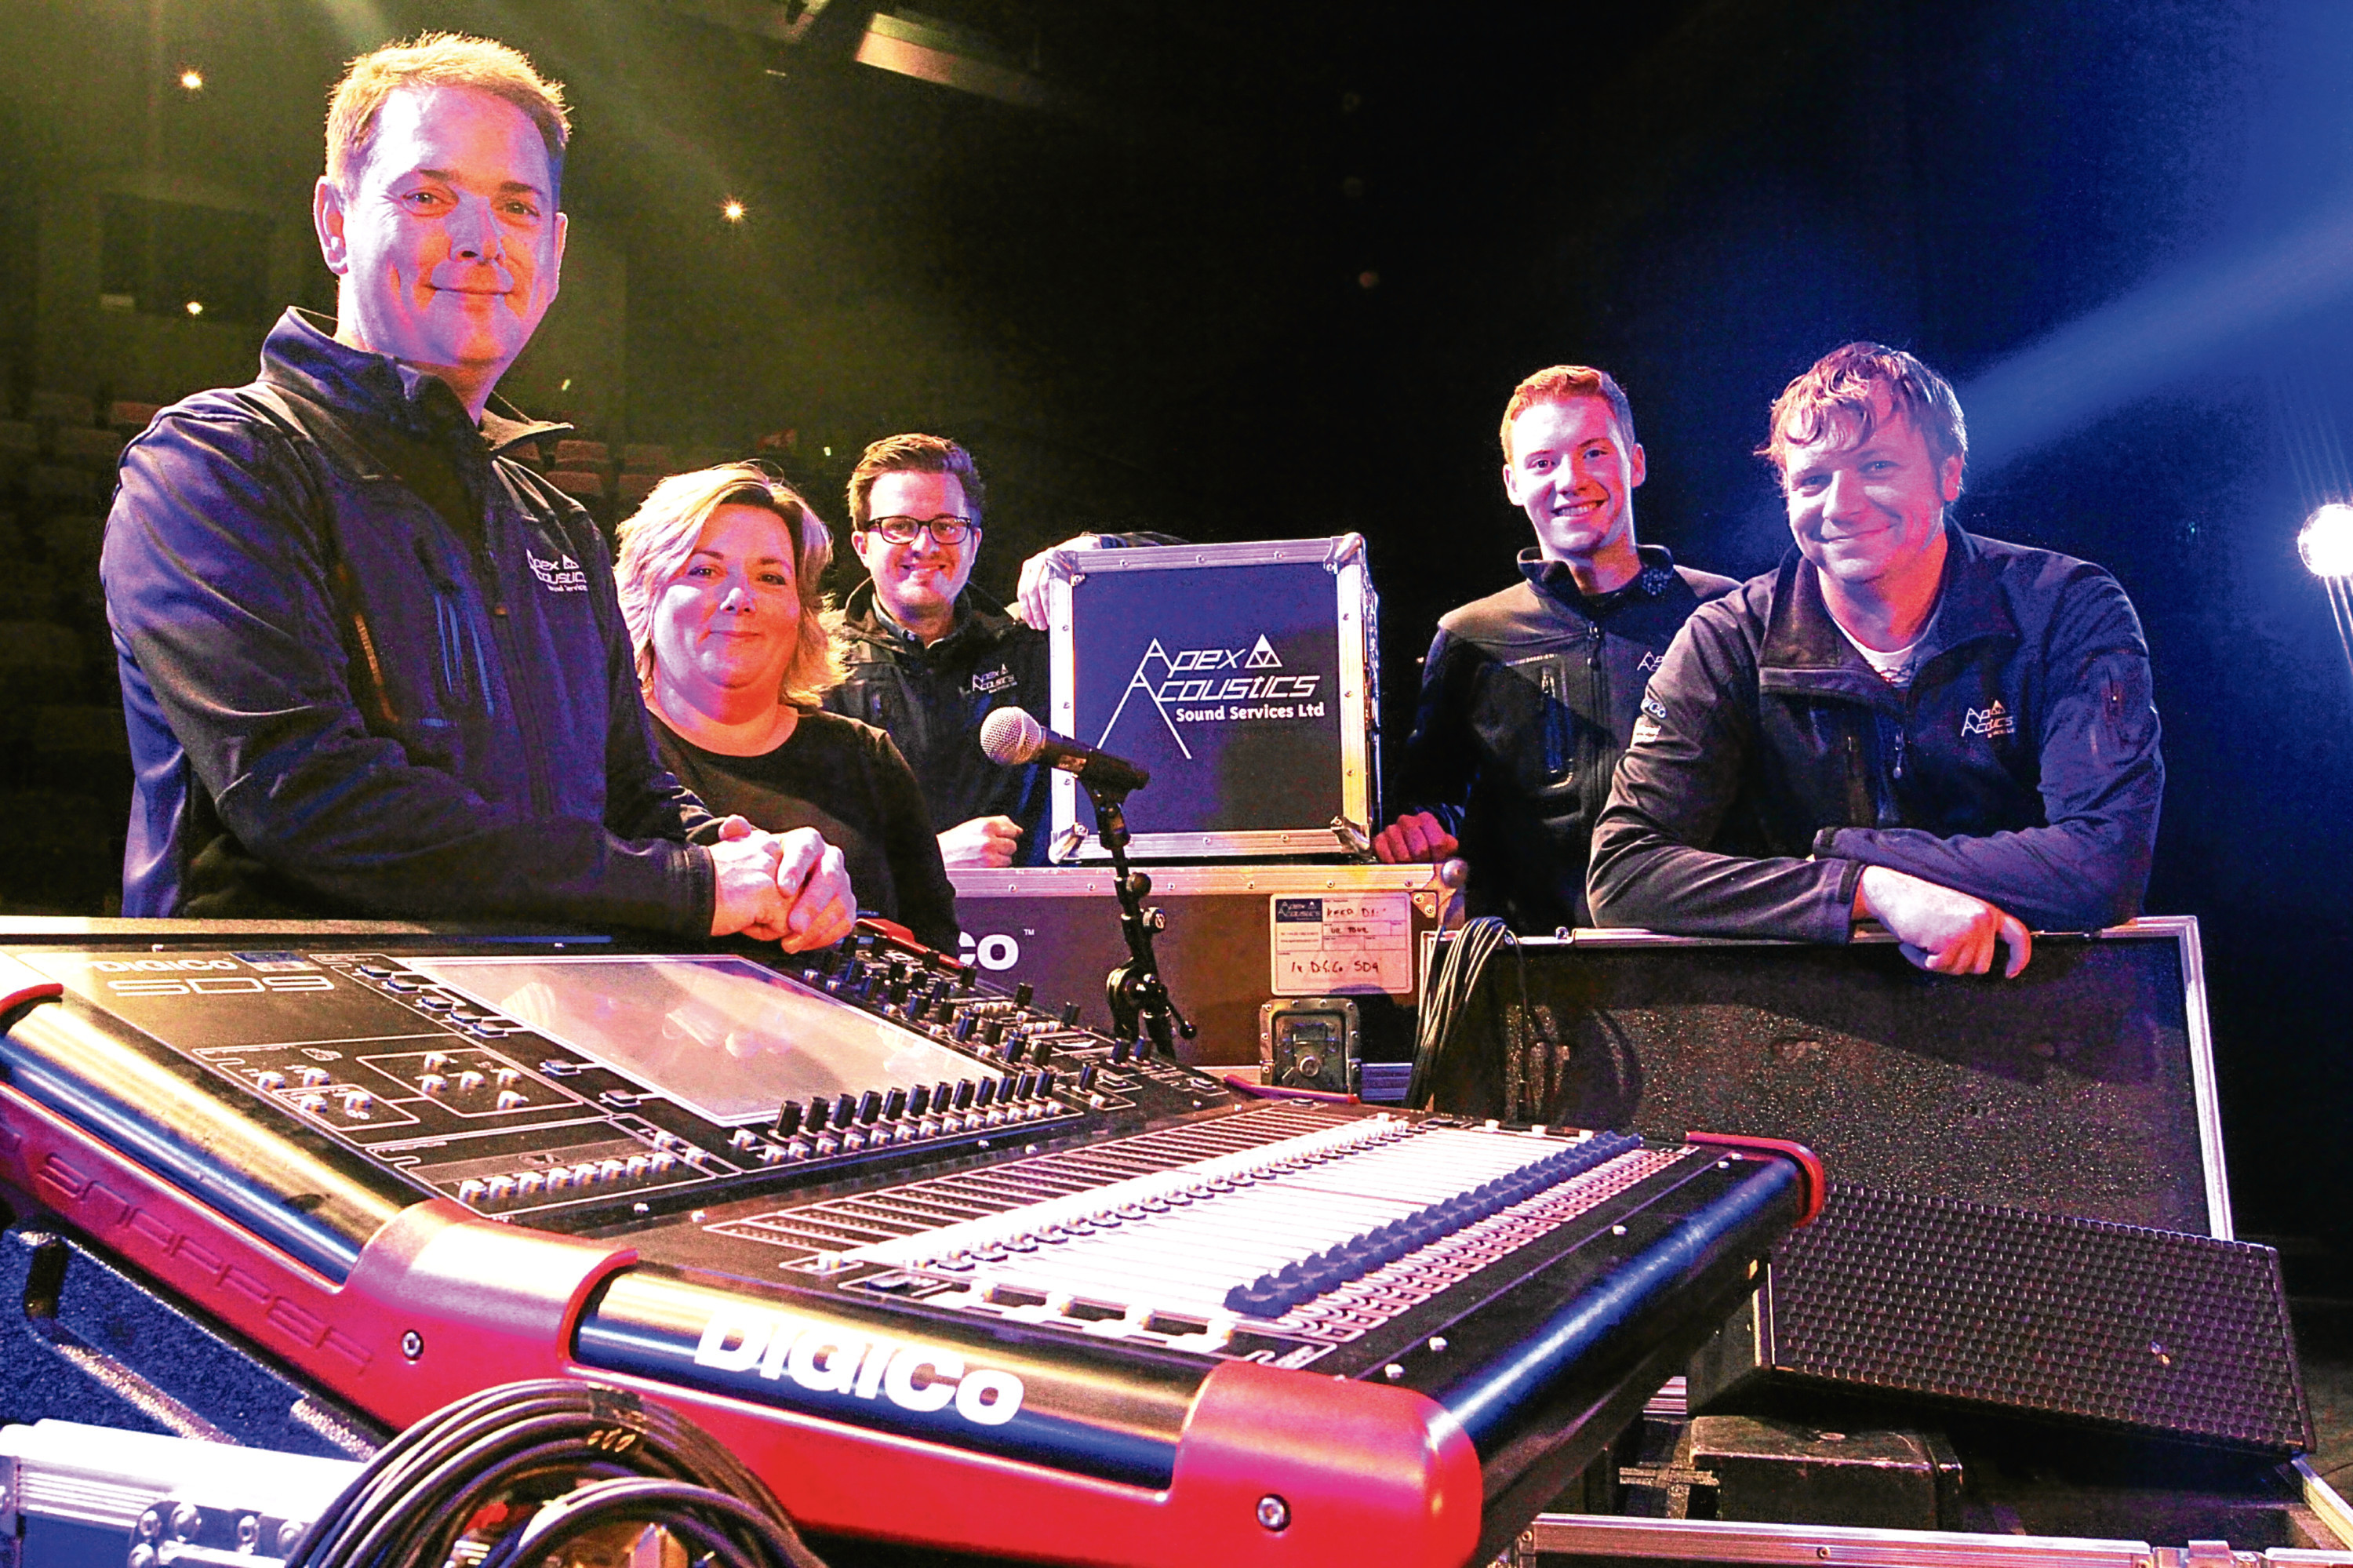 Apex Acoustic's director Paul Smith, admin Louise Price, project manager Sean Quinn, sound engineer Chris Combe and technical manager Scott McGurk.